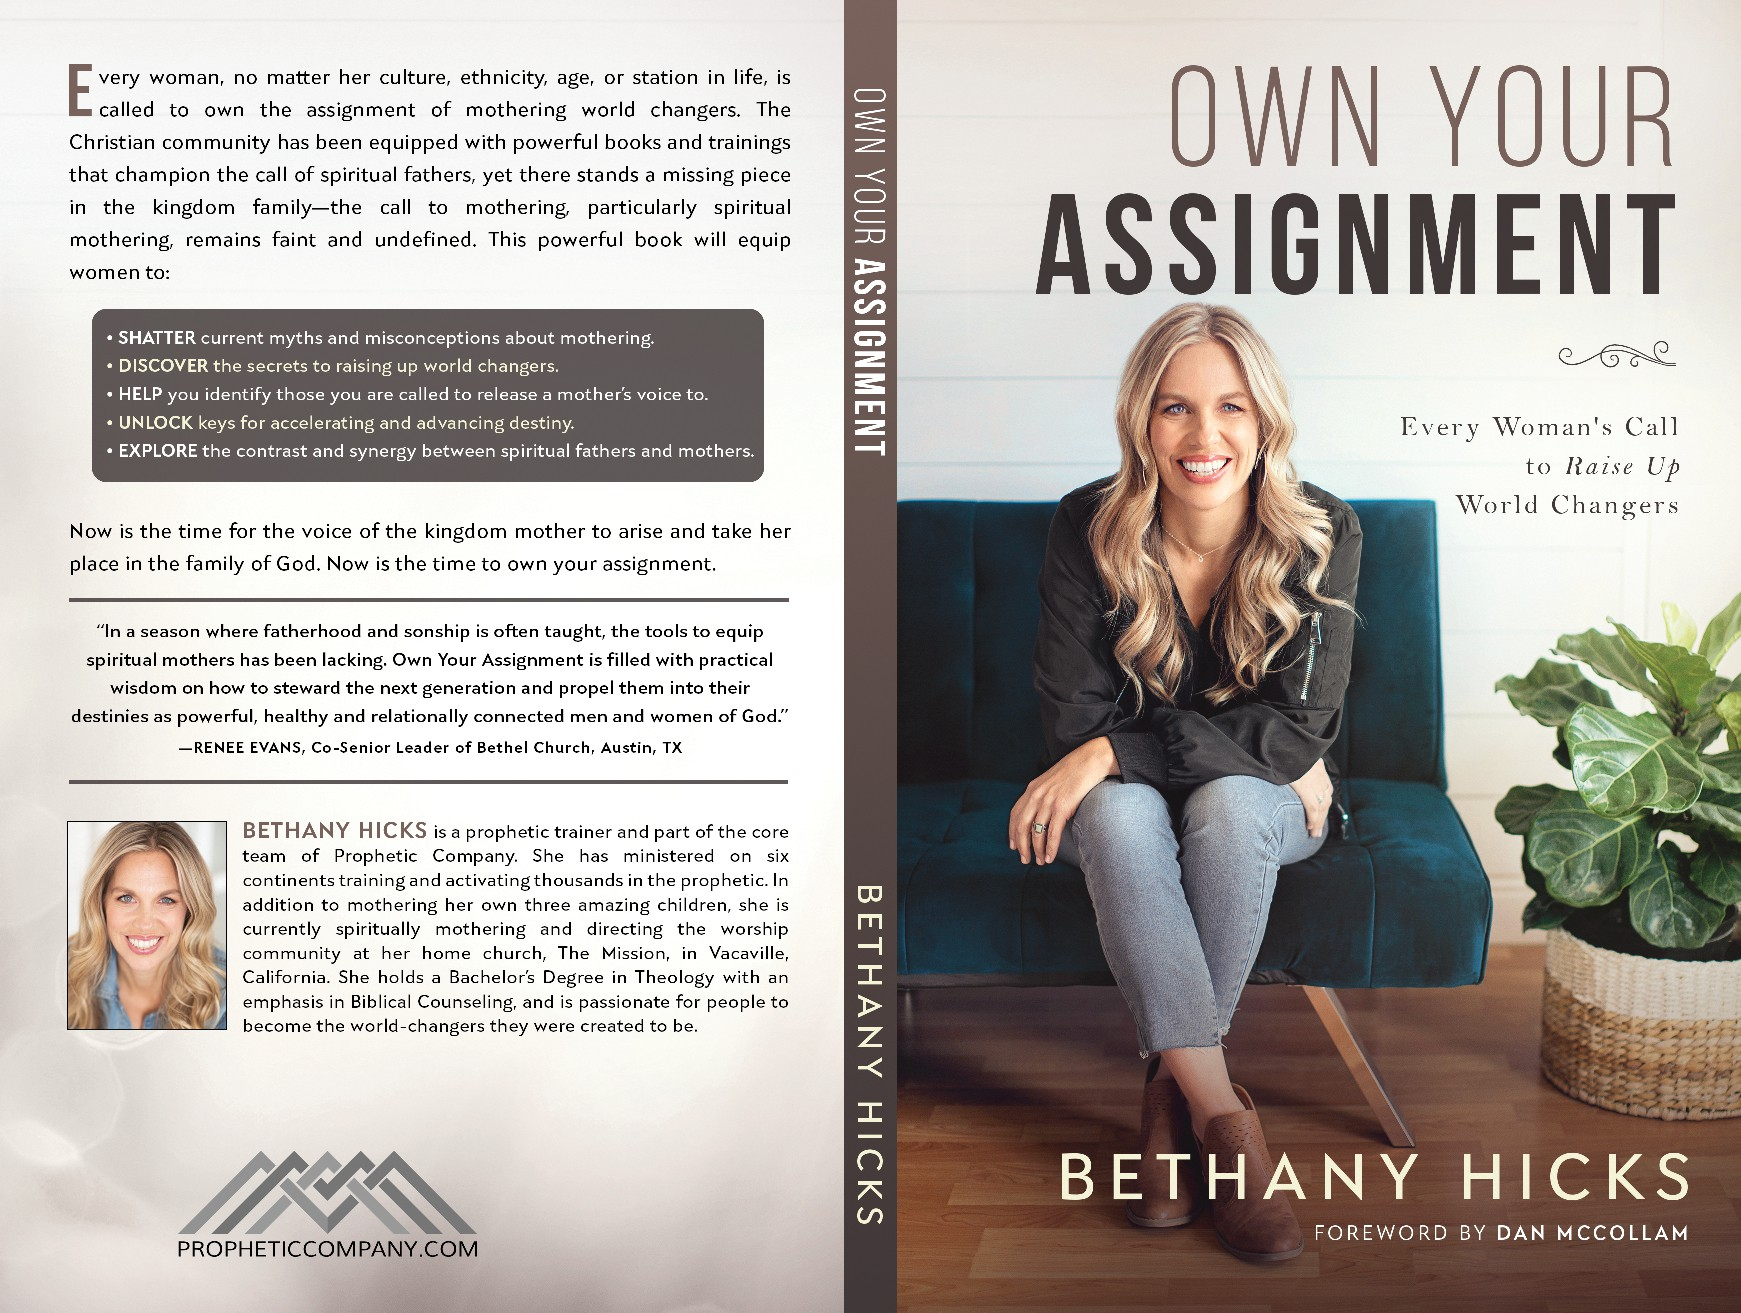 Fresh new book cover geared towards empowering and powerful women